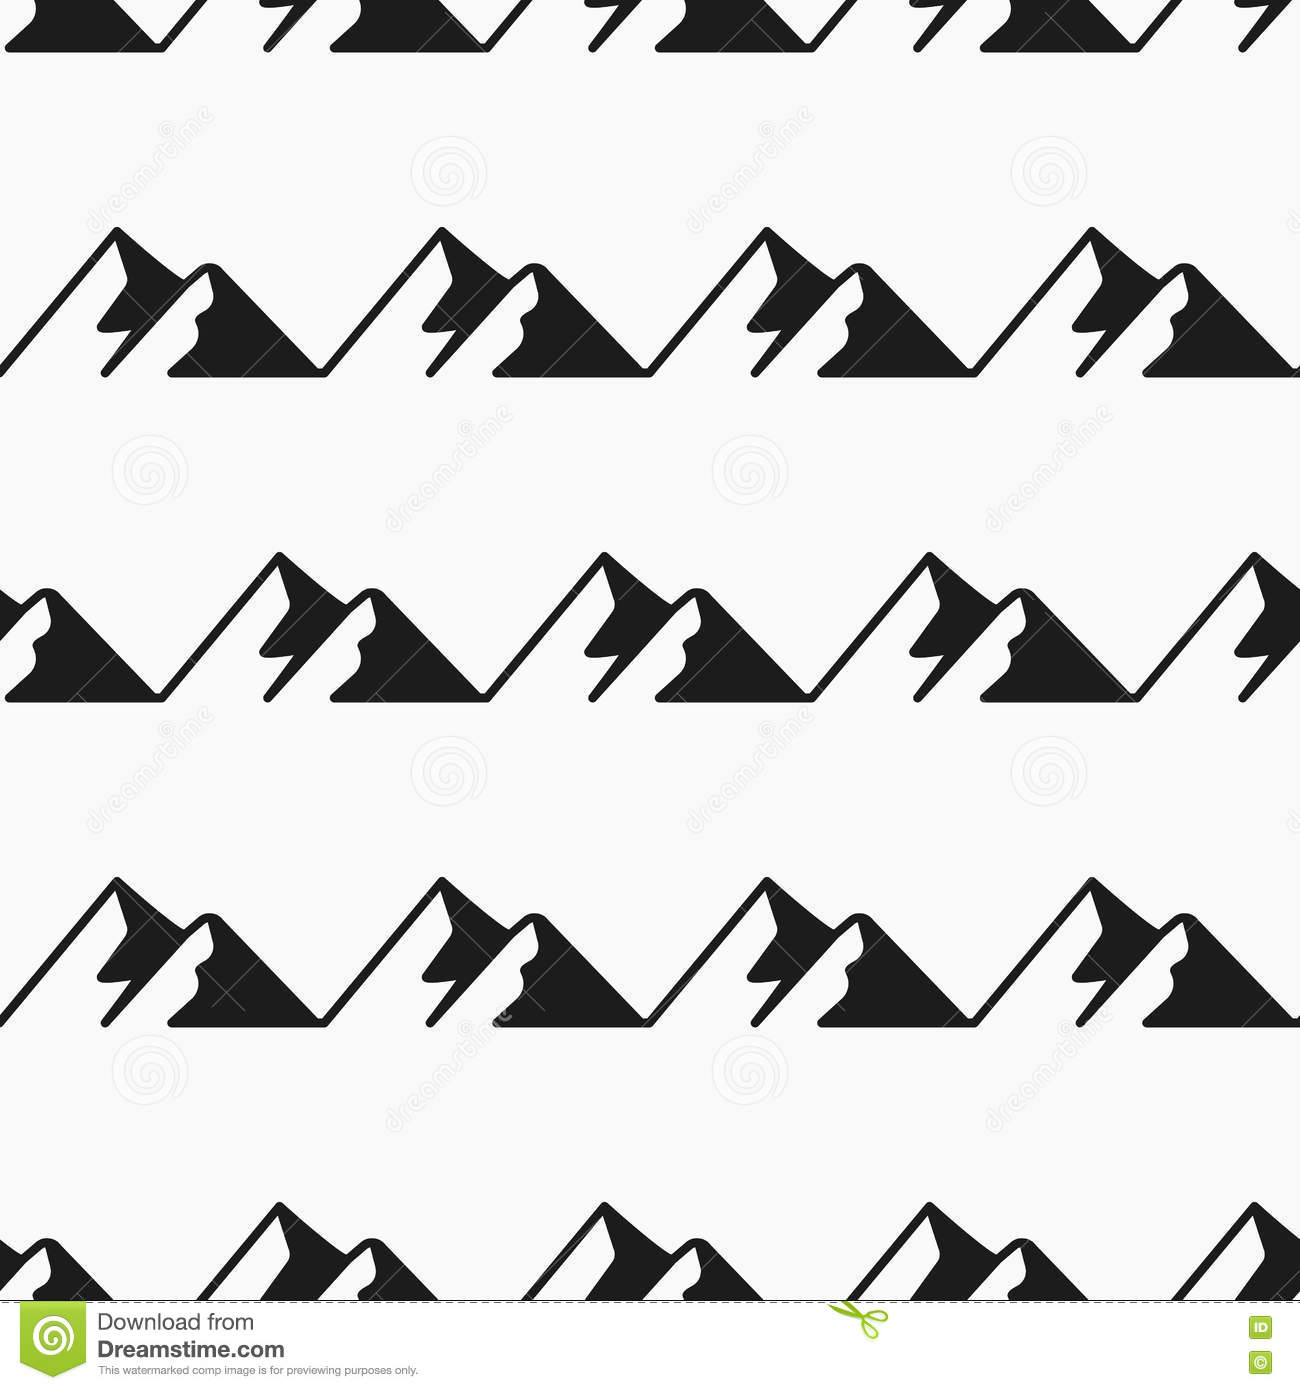 Fantastic Wallpaper Mountain Pattern - mountains-seamless-pattern-tourism-vector-pattern-swatches-endless-texture-can-be-used-wallpaper-fills-web-page-71314379  Photograph_2902.jpg